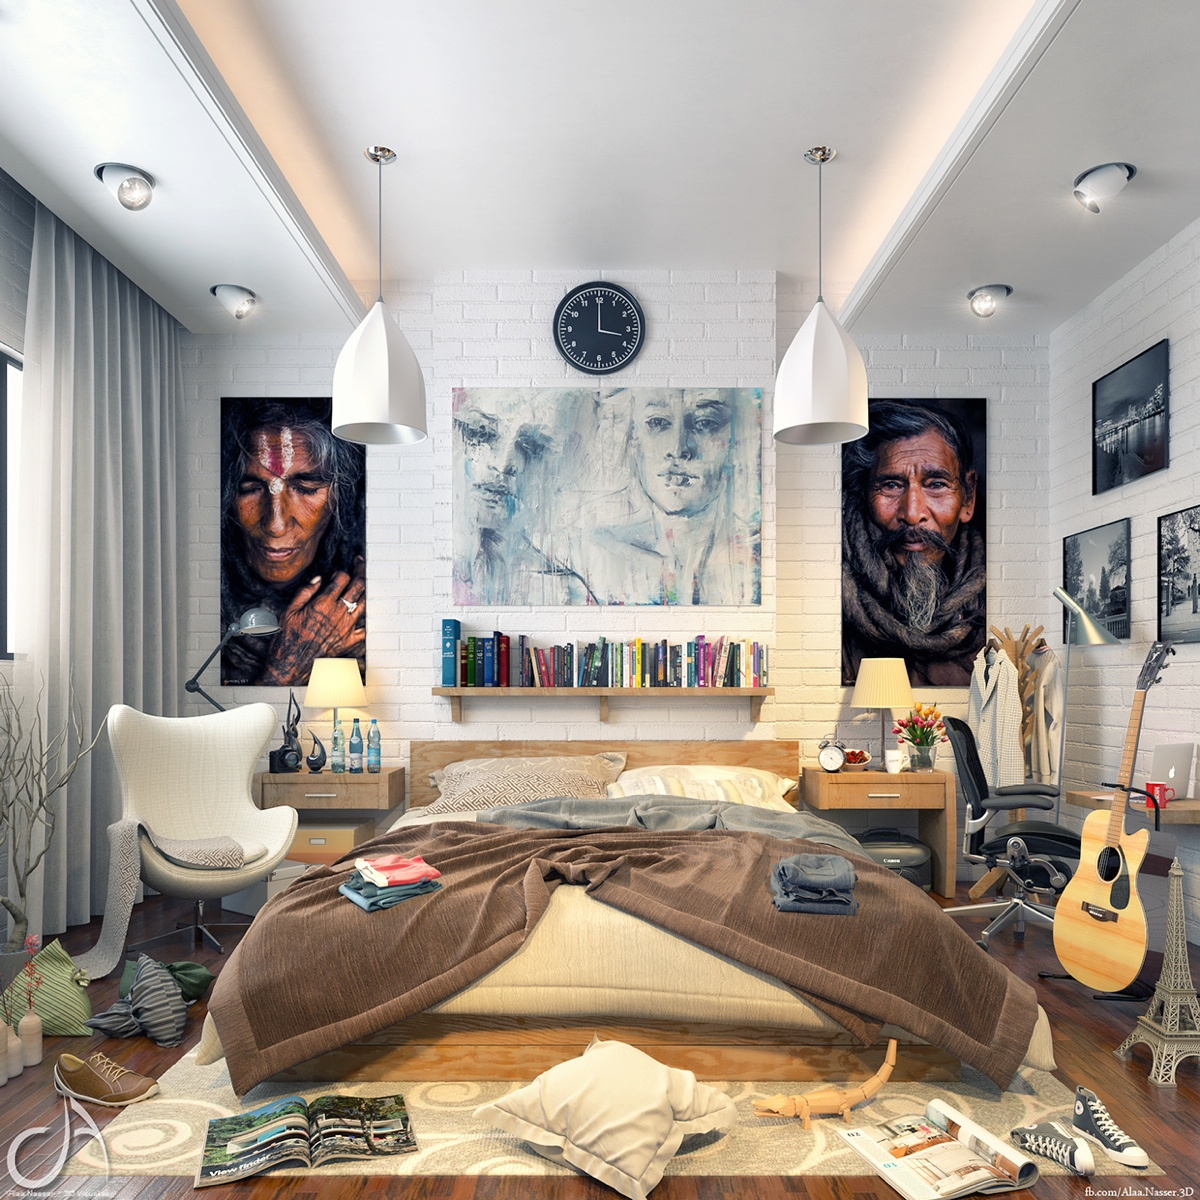 Creative people have messy homes | Mishon Welton Estate Agents on Room Decor Indie id=35696